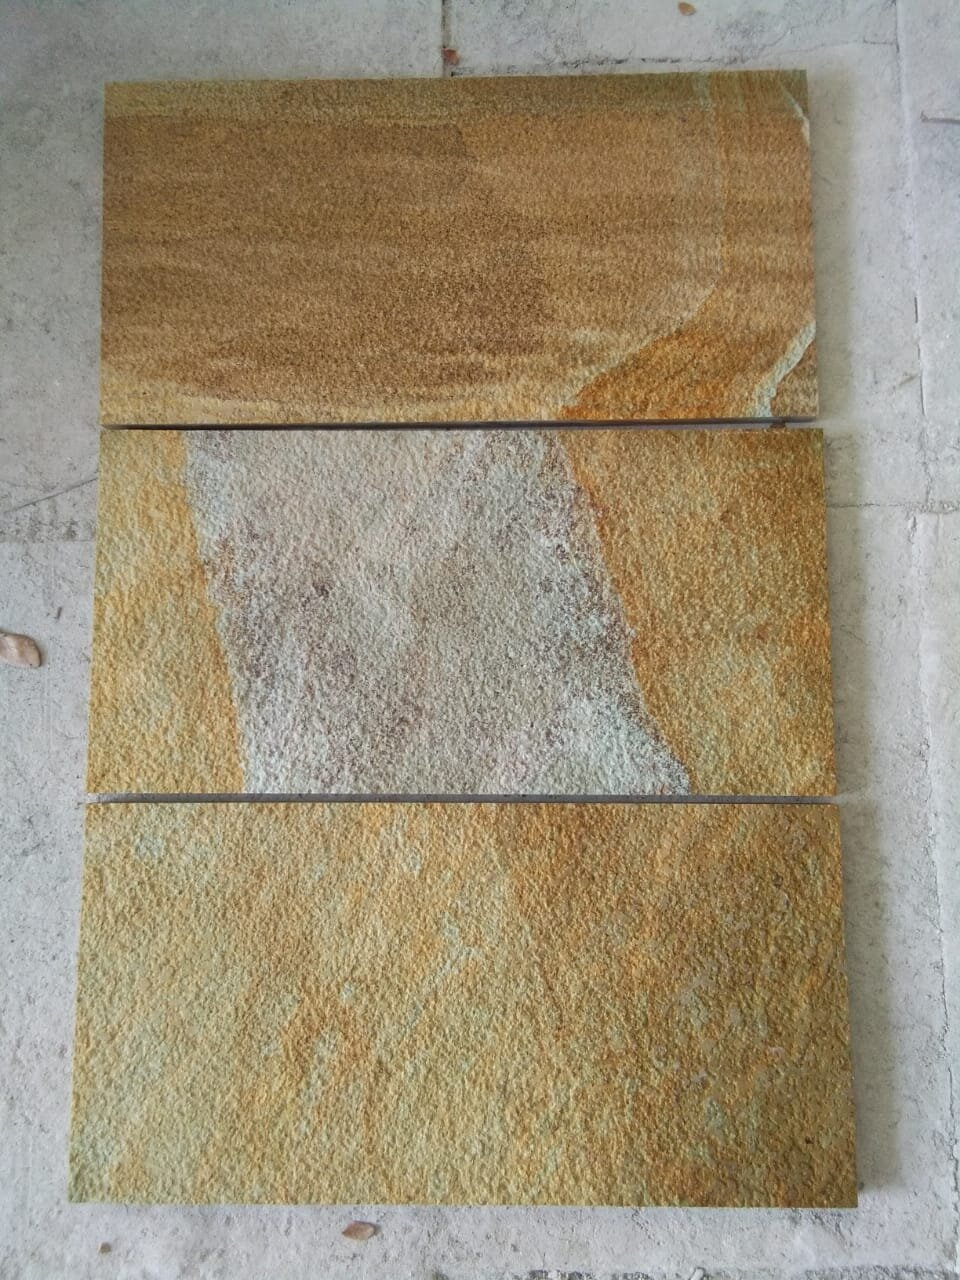 Indonesia Yellow Palimanan Sandstone Tiles